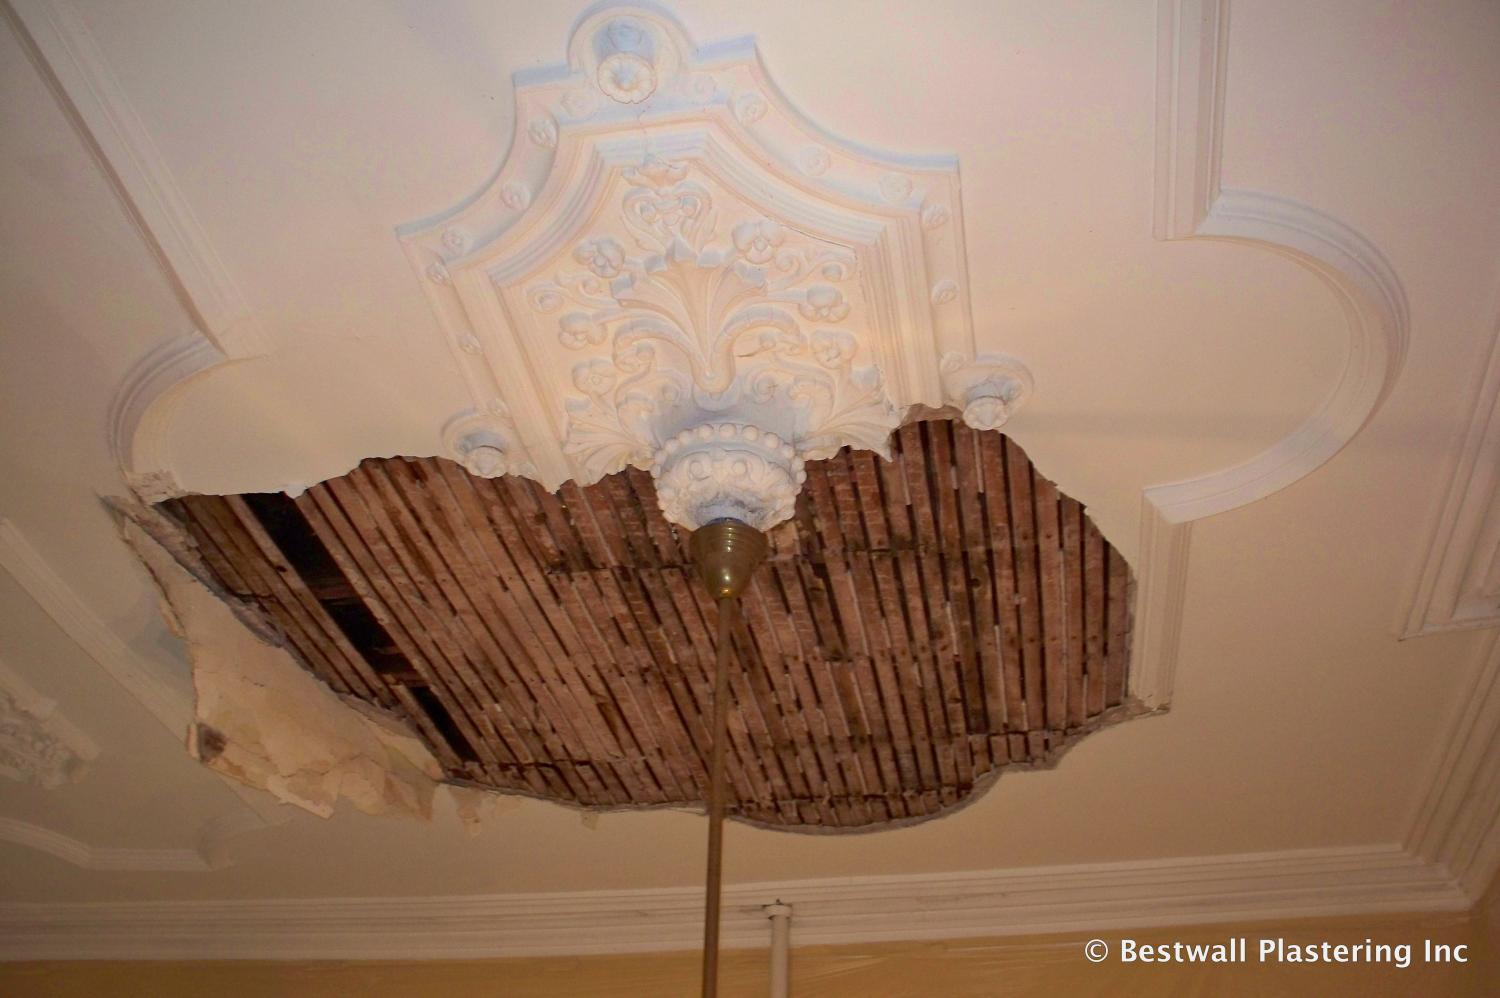 Ornate Plaster Ceiling Repairinstallation Nyc further Artisan Textures And Drywall Inc Encinitas Ca likewise Drywall and texture s les additionally How To Cover A Ceiling Crack furthermore How To Repair A Textured Ceiling. on plaster ceiling repair water damage